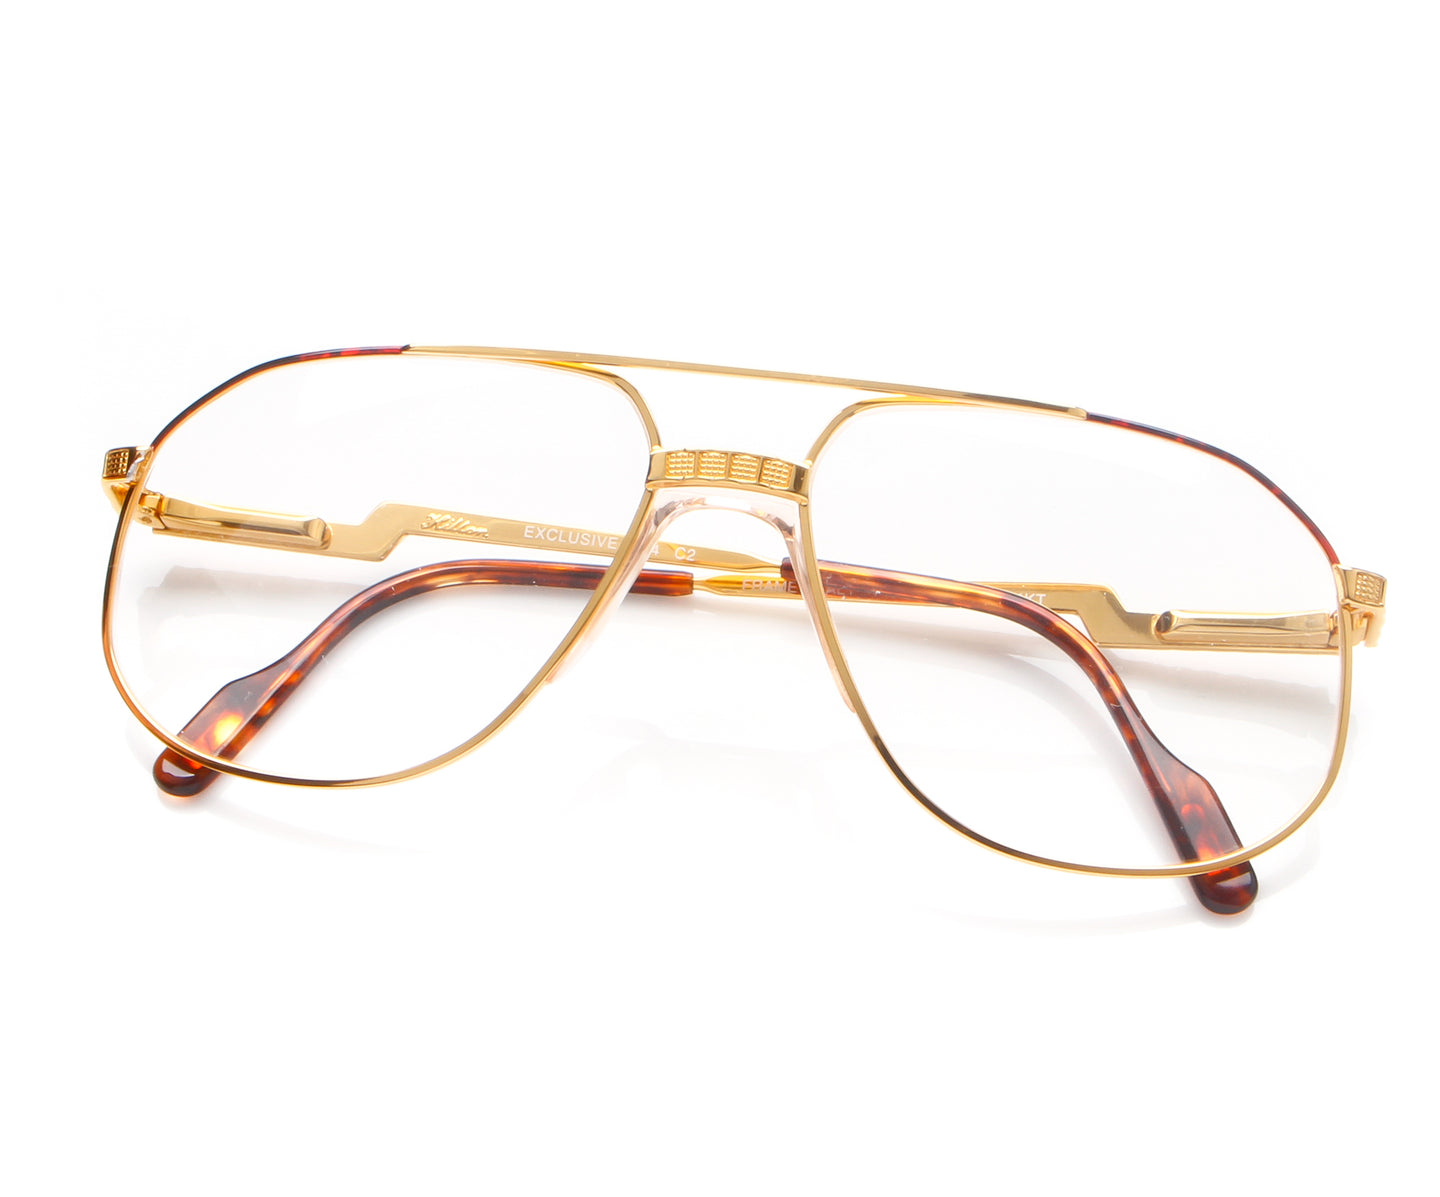 Vintage Hilton Exclusive 024 2 24KT Thumb, Hilton , glasses frames, eyeglasses online, eyeglass frames, mens glasses, womens glasses, buy glasses online, designer eyeglasses, vintage sunglasses, retro sunglasses, vintage glasses, sunglass, eyeglass, glasses, lens, vintage frames company, vf